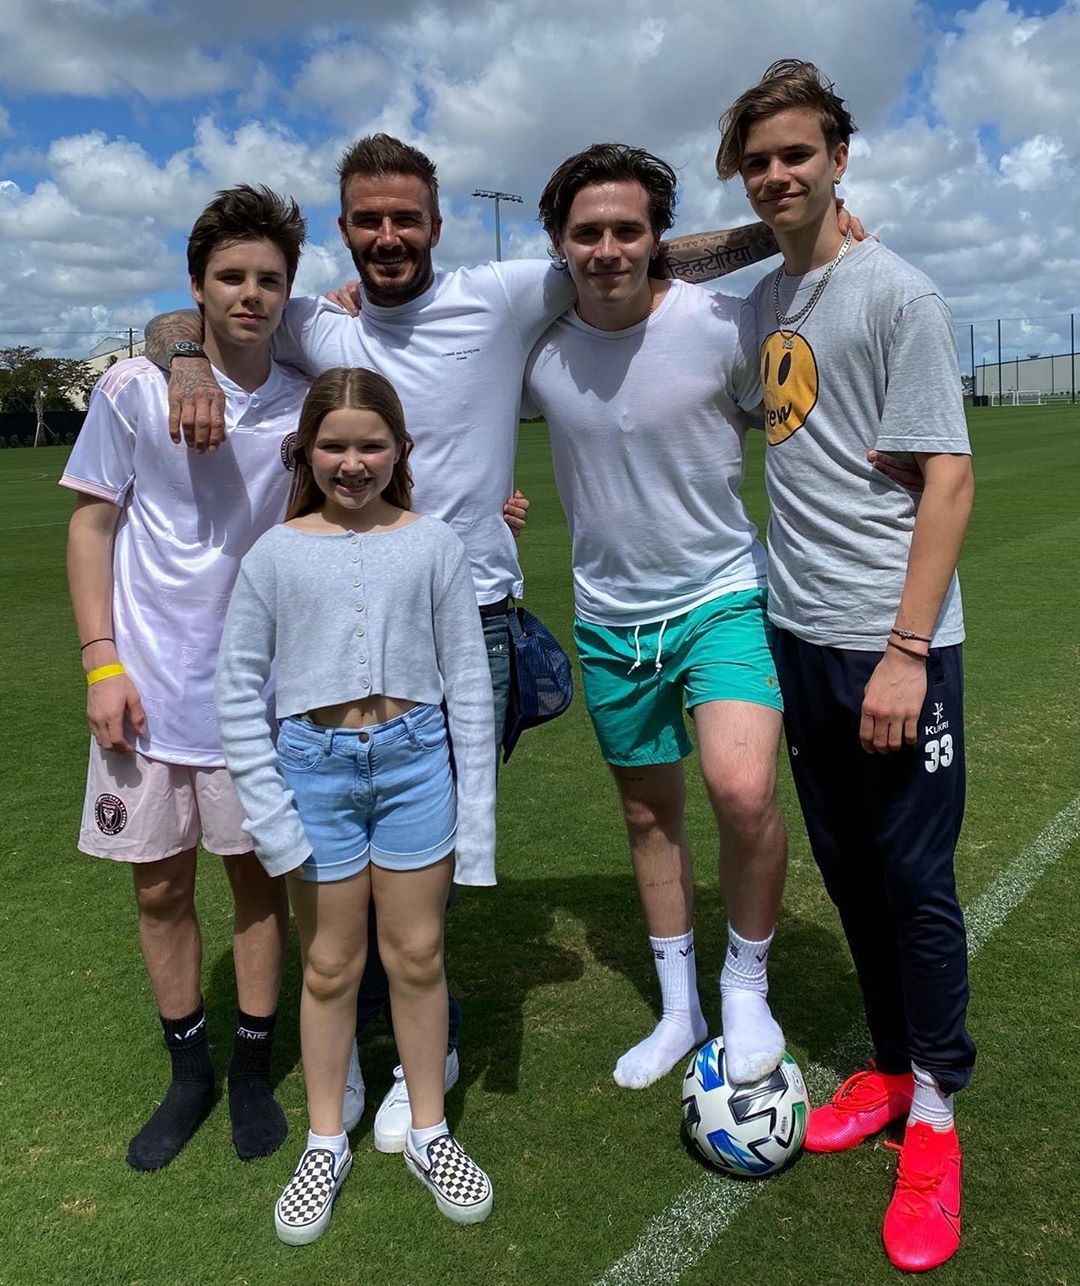 David Beckham Instagram: Today is Global Day of Parents. As a father of four I know that being a parent m...